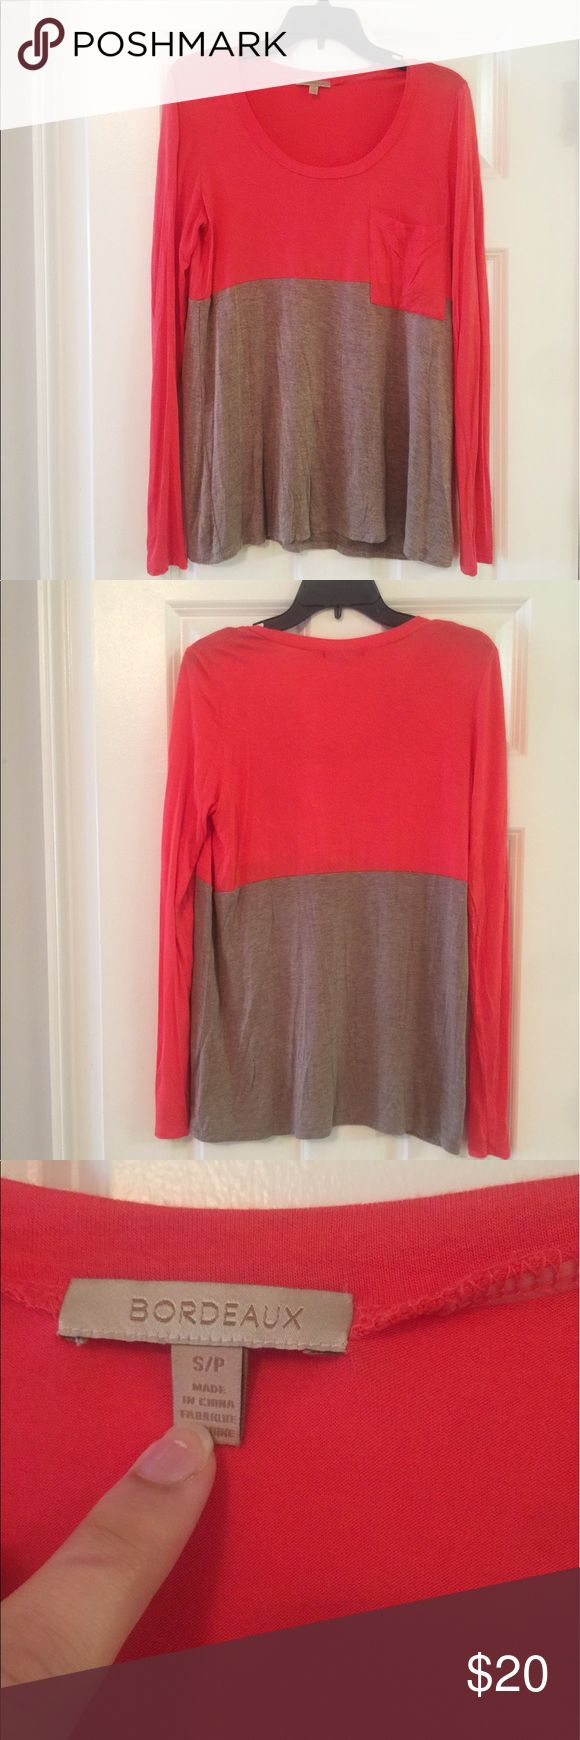 Anthropologie Bordeaux Color Block Tee, EUC In excellent condition and still looks fairly new. No fading, rips, stains or flaws. Incredibly comfortable and a great piece to wear with jeans or leggings. Relaxed fit. From Anthroplogie. Please let me know if you have any questions. Reasonable offers welcome. Bundle and save 15% on 2 or more items 💕 Anthropologie Tops Tees - Long Sleeve